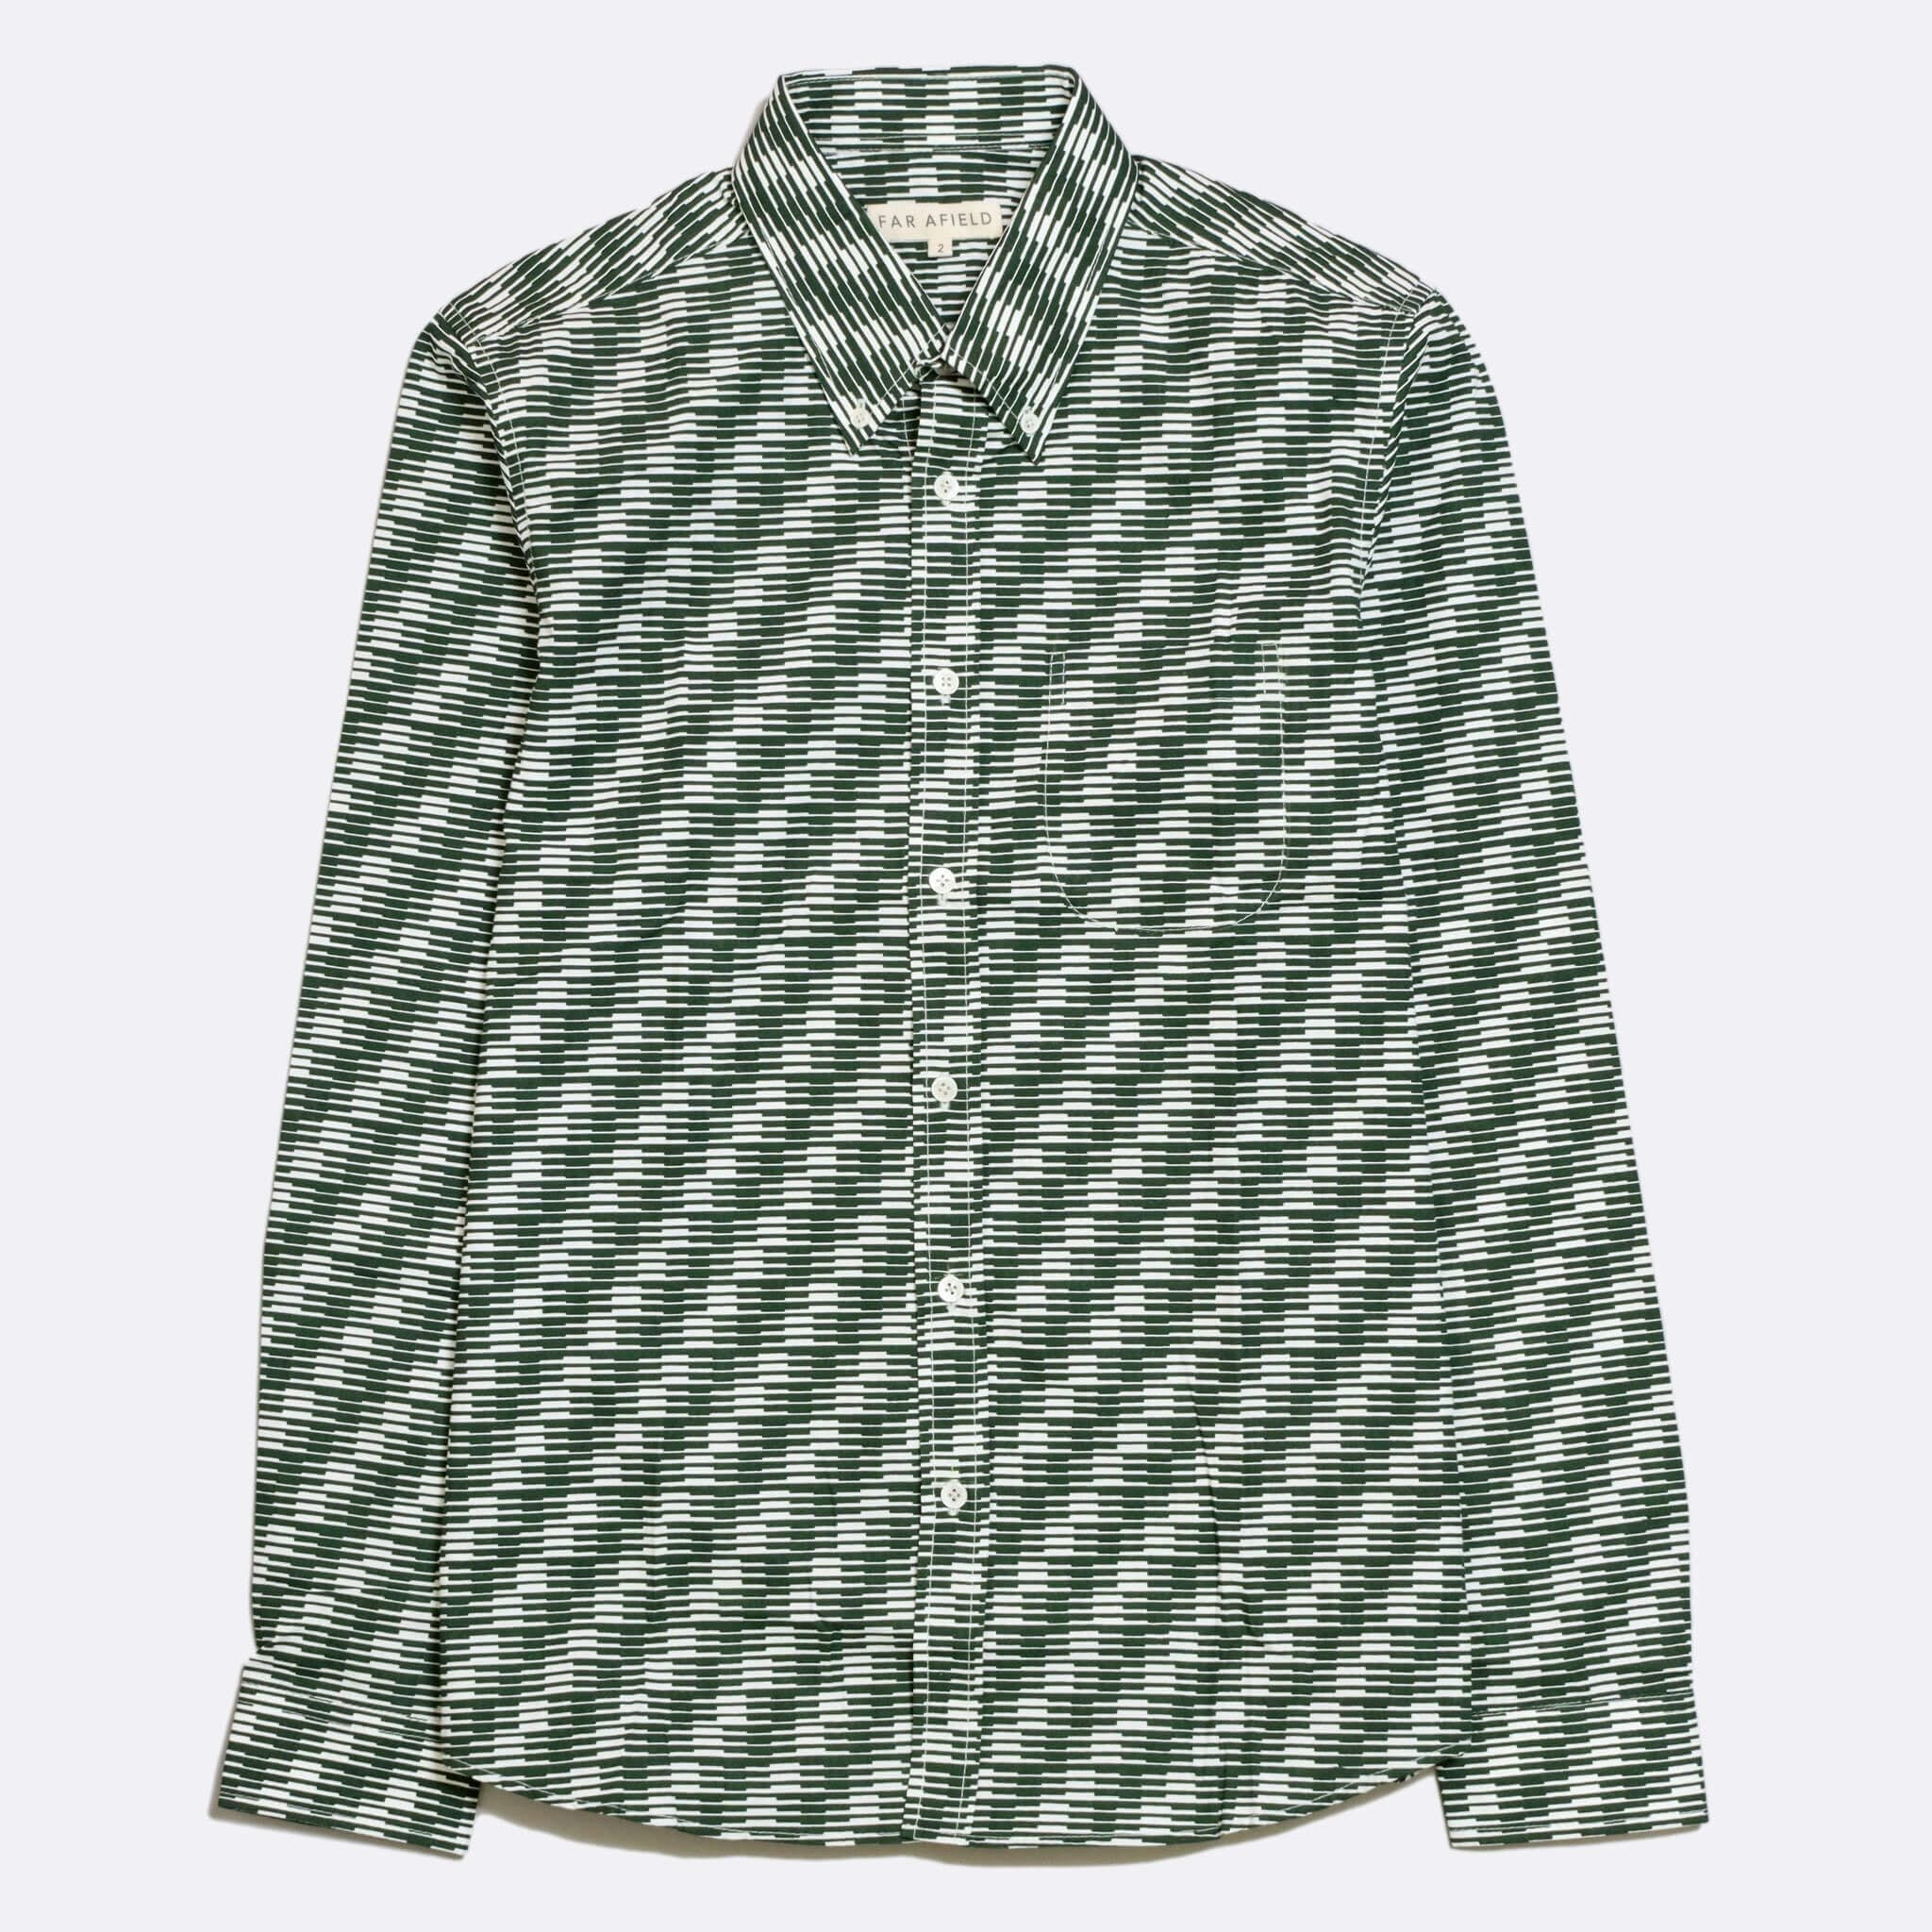 Far Afield Mod Button Down Long Sleeve Shirt a Green Organic Cotton Classic Fabric Tailored Smart Casual